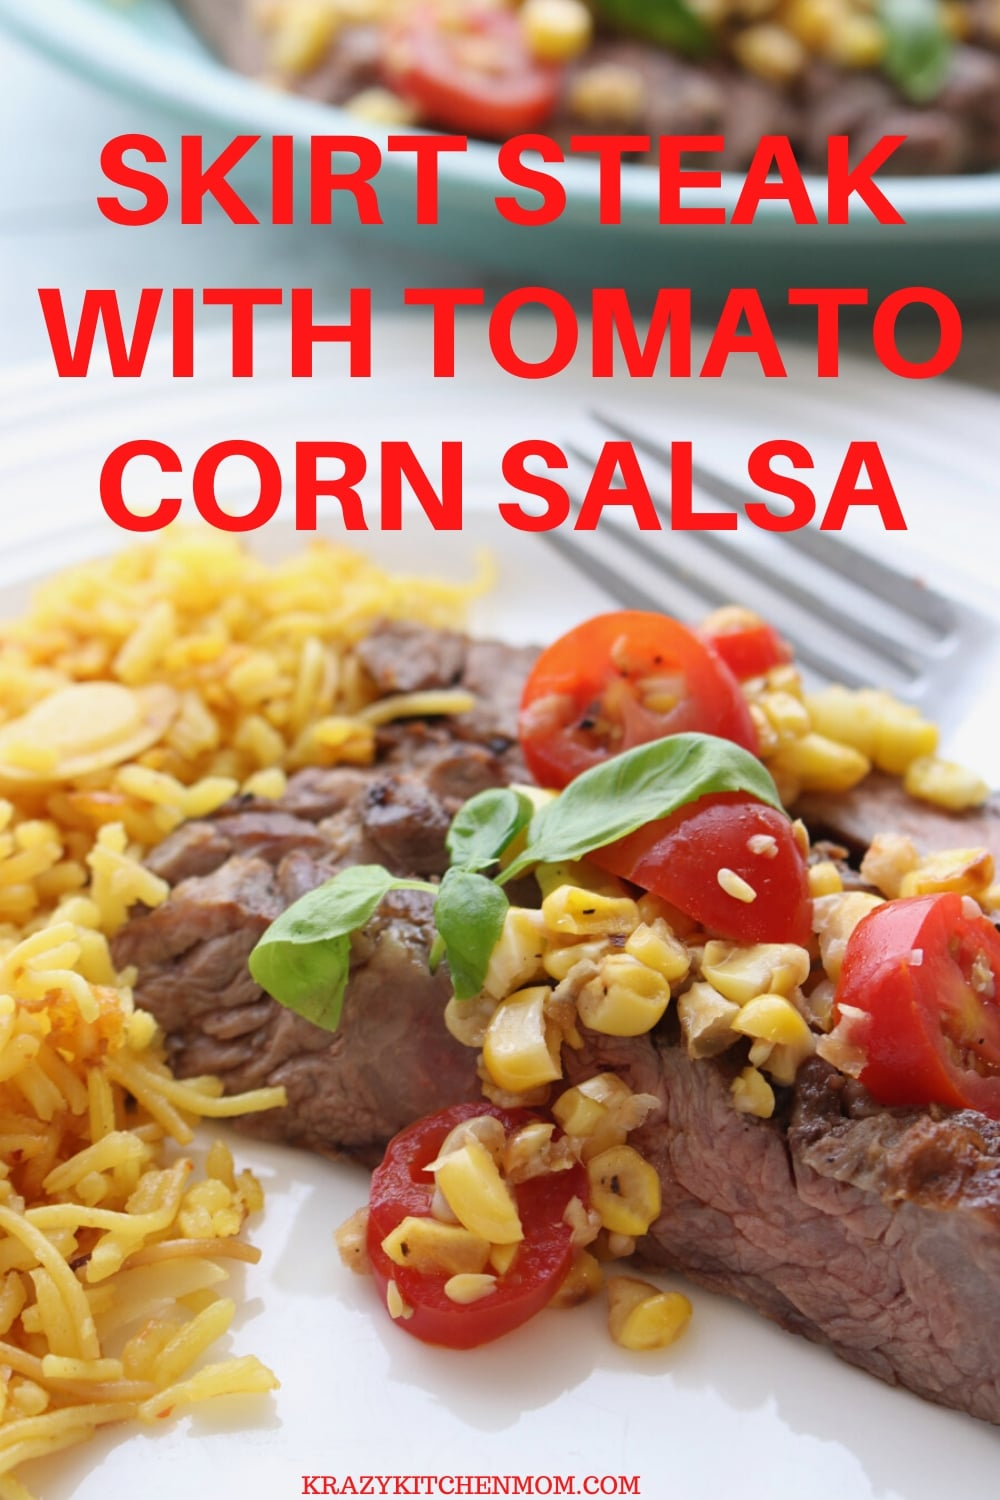 Skirt Steak with Tomato Corn Salsa - Perfectly cooked skirt steak topped with a sweet tangy tomato corn salsa. Serve it with rice for a delicious dinner. via @krazykitchenmom